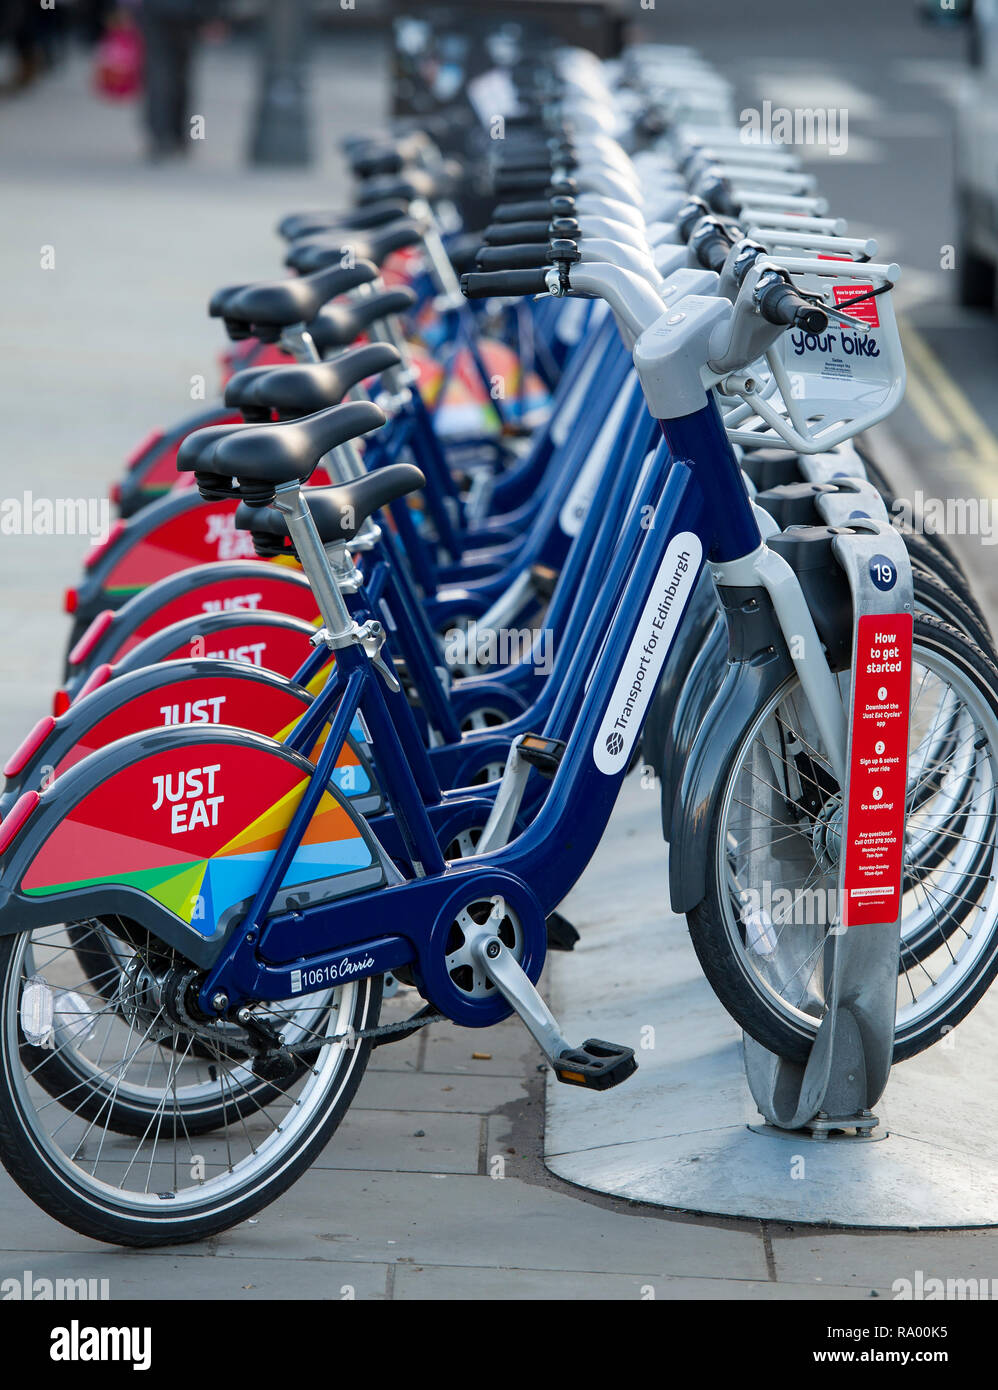 Just Eat sponsored bike hire part of the Transport for Edinburgh bicycle for hire network in the city centre. - Stock Image